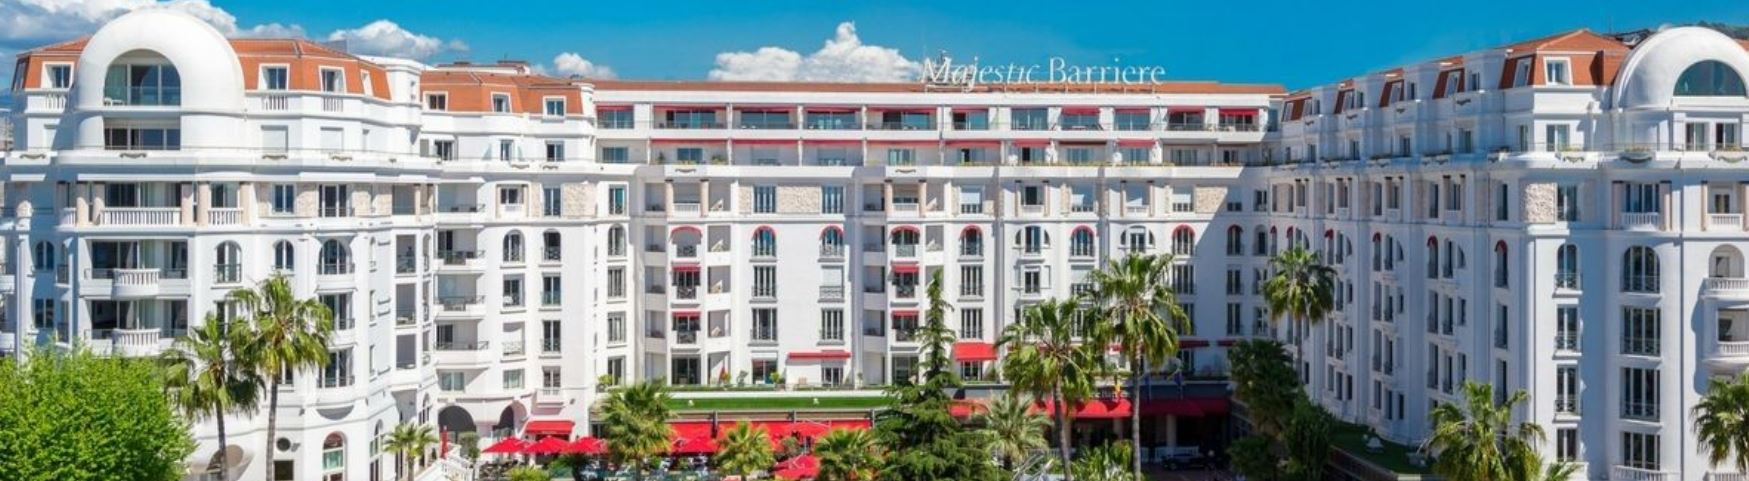 majestic Cannes Barriére The way magazine